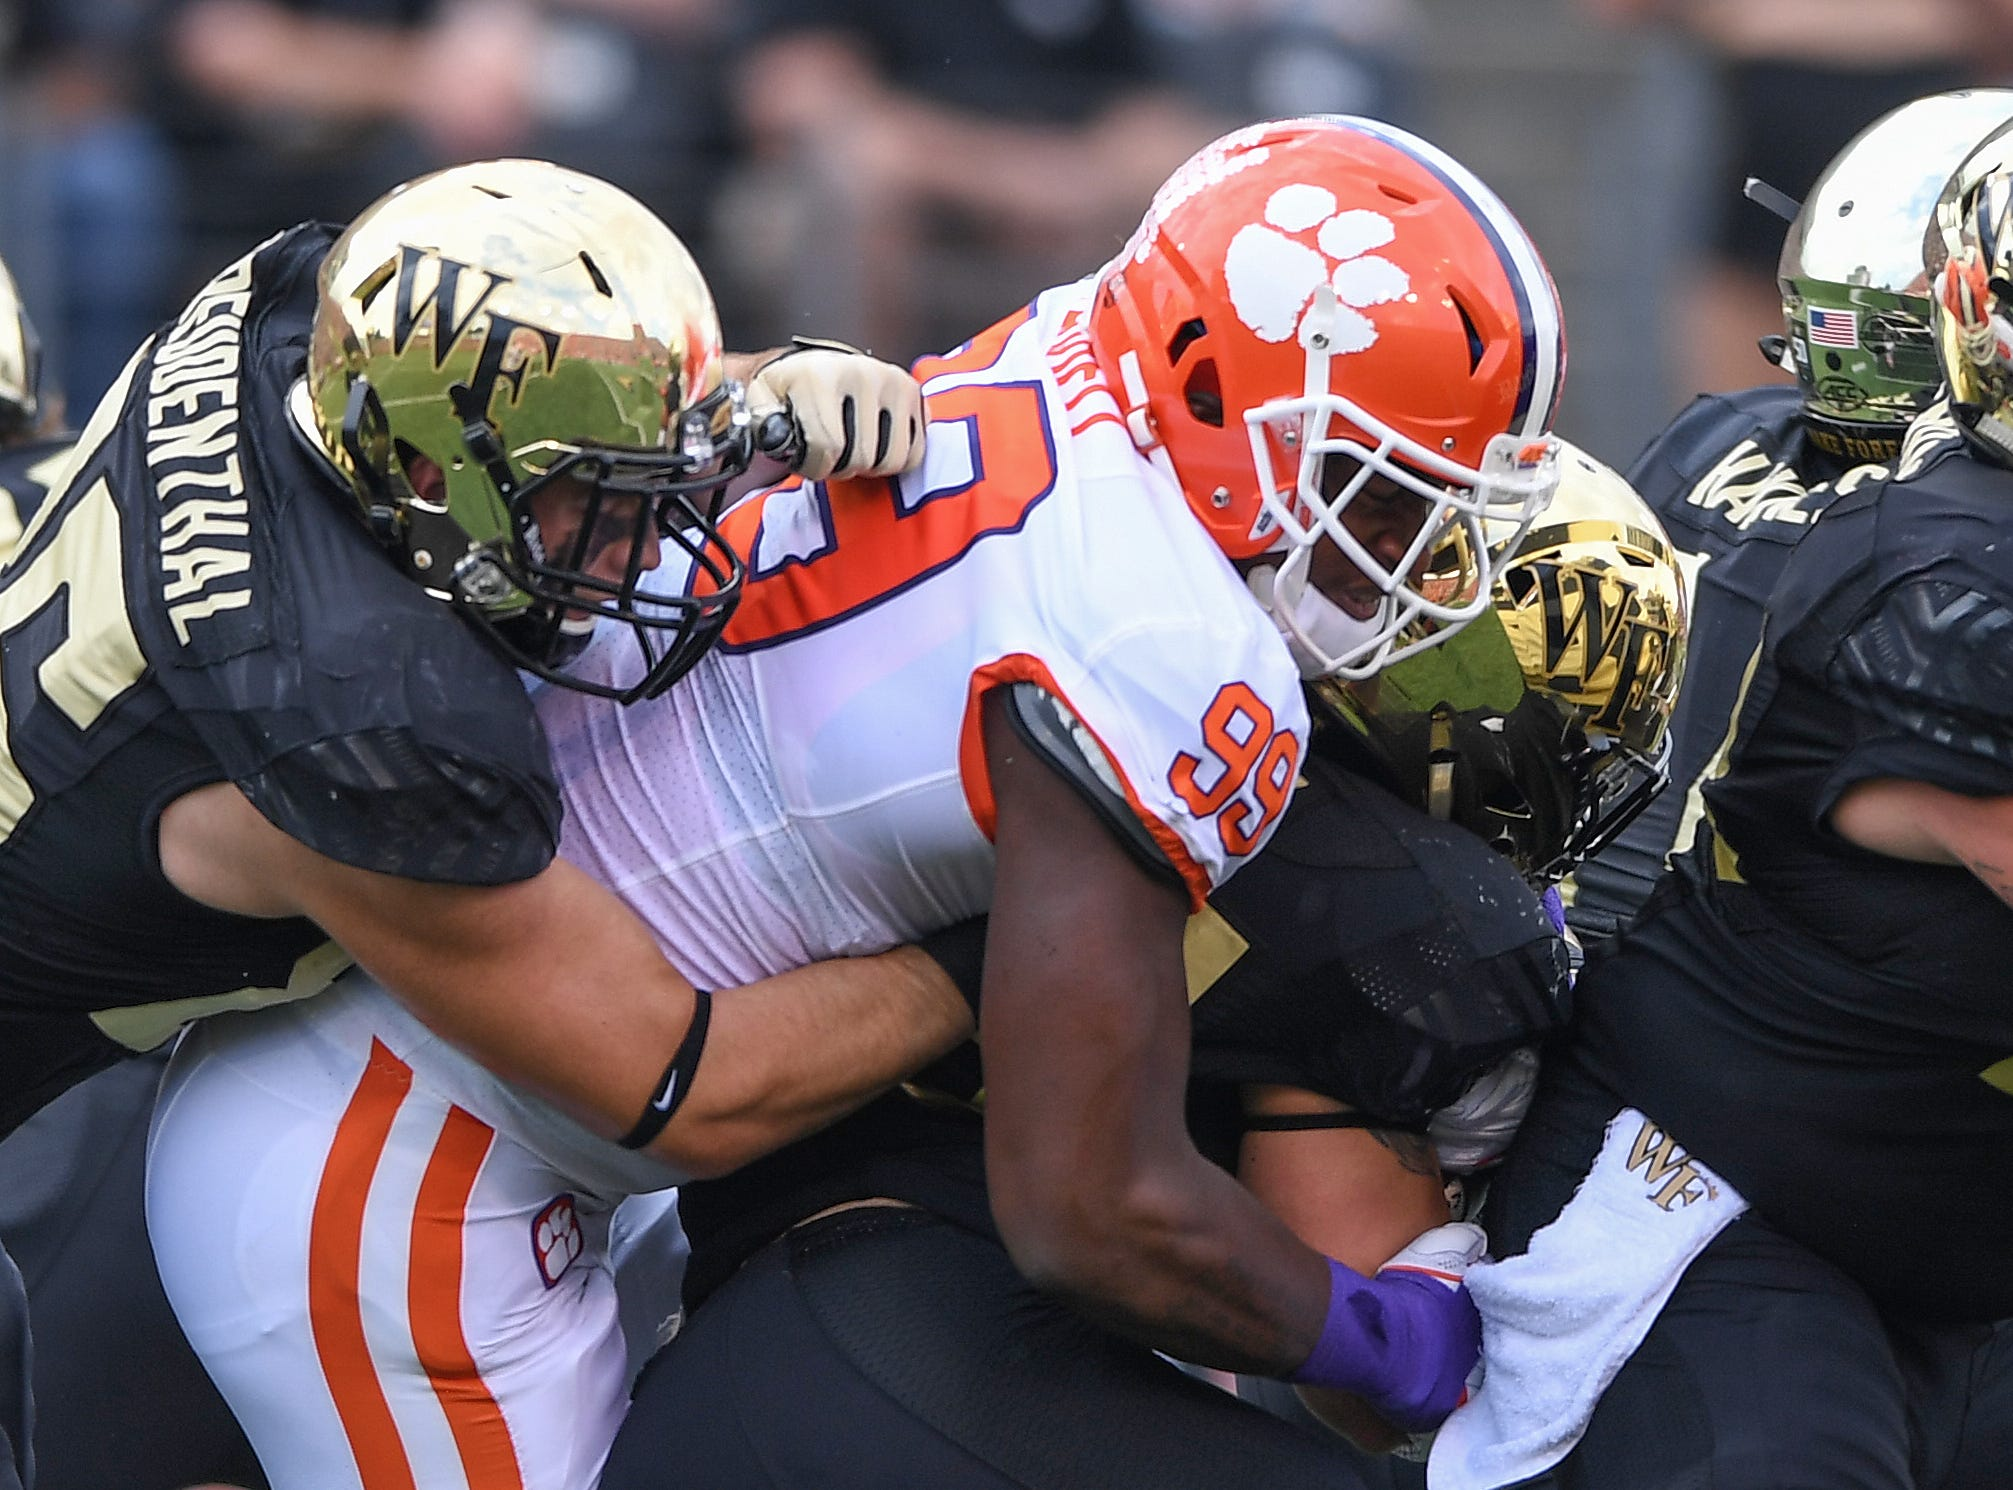 Clemson defensive lineman Clelin Ferrell (99) tackles Wake Forest running back Cade Carney (36) during the 1st quarter at BB&T Field in Winston Salem, N.C. Saturday, October 6, 2018.